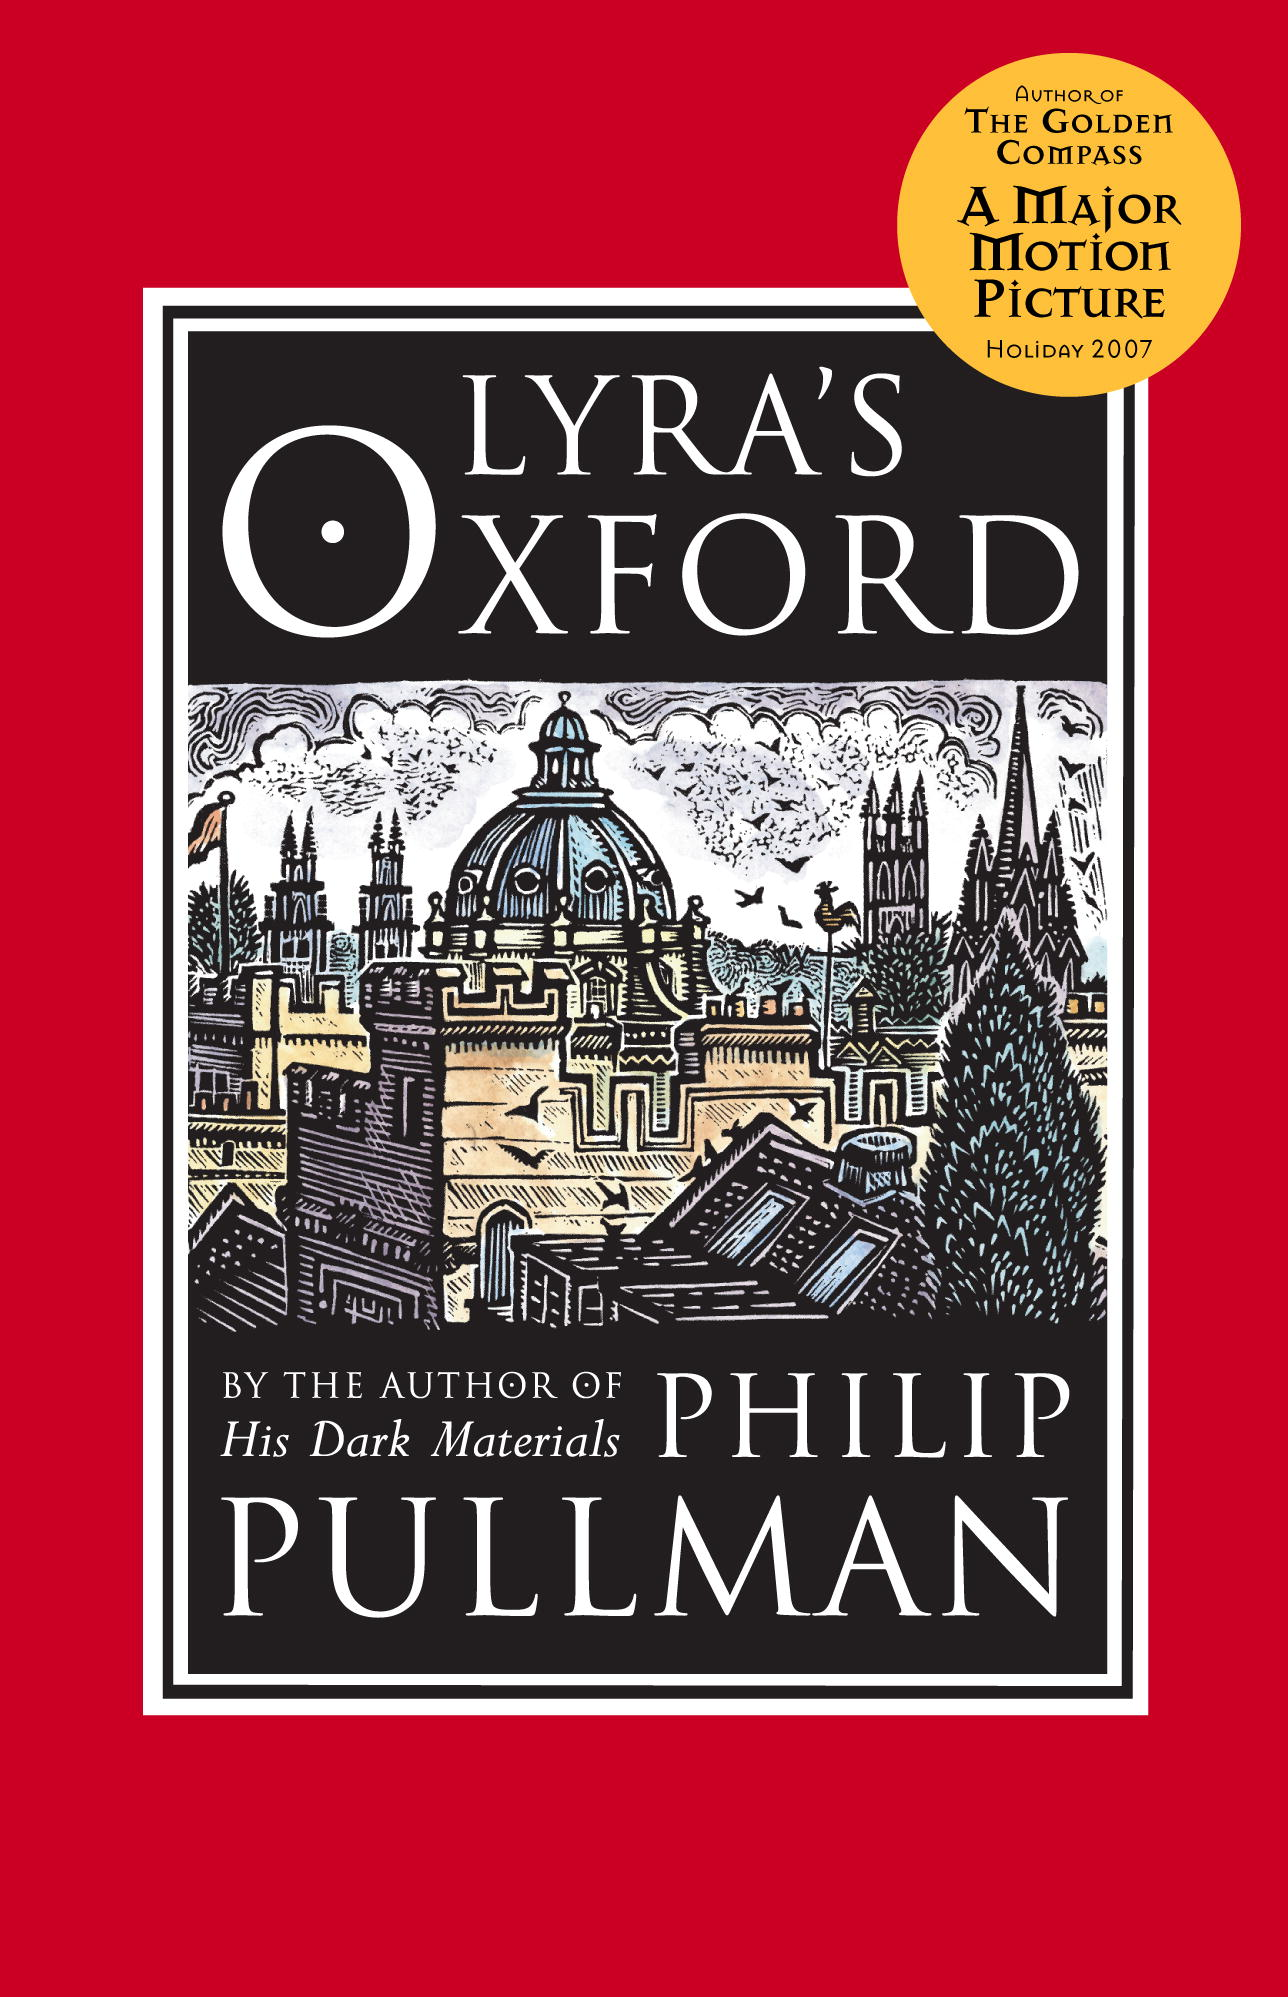 Lyra's Oxford: His Dark Materials By: Philip Pullman